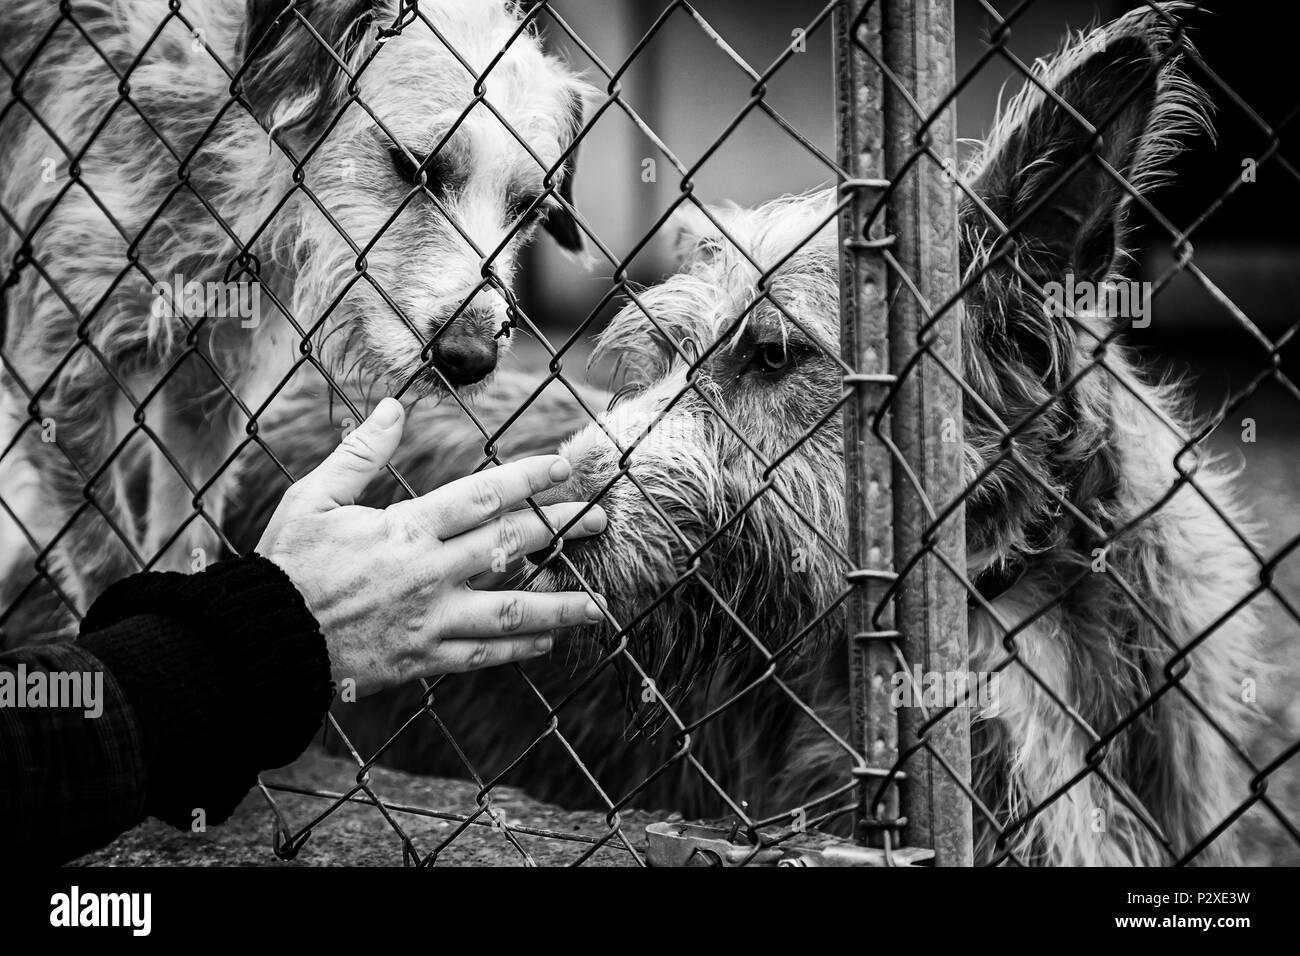 Woman petting stray dogs, kennel for stray animals - Stock Image